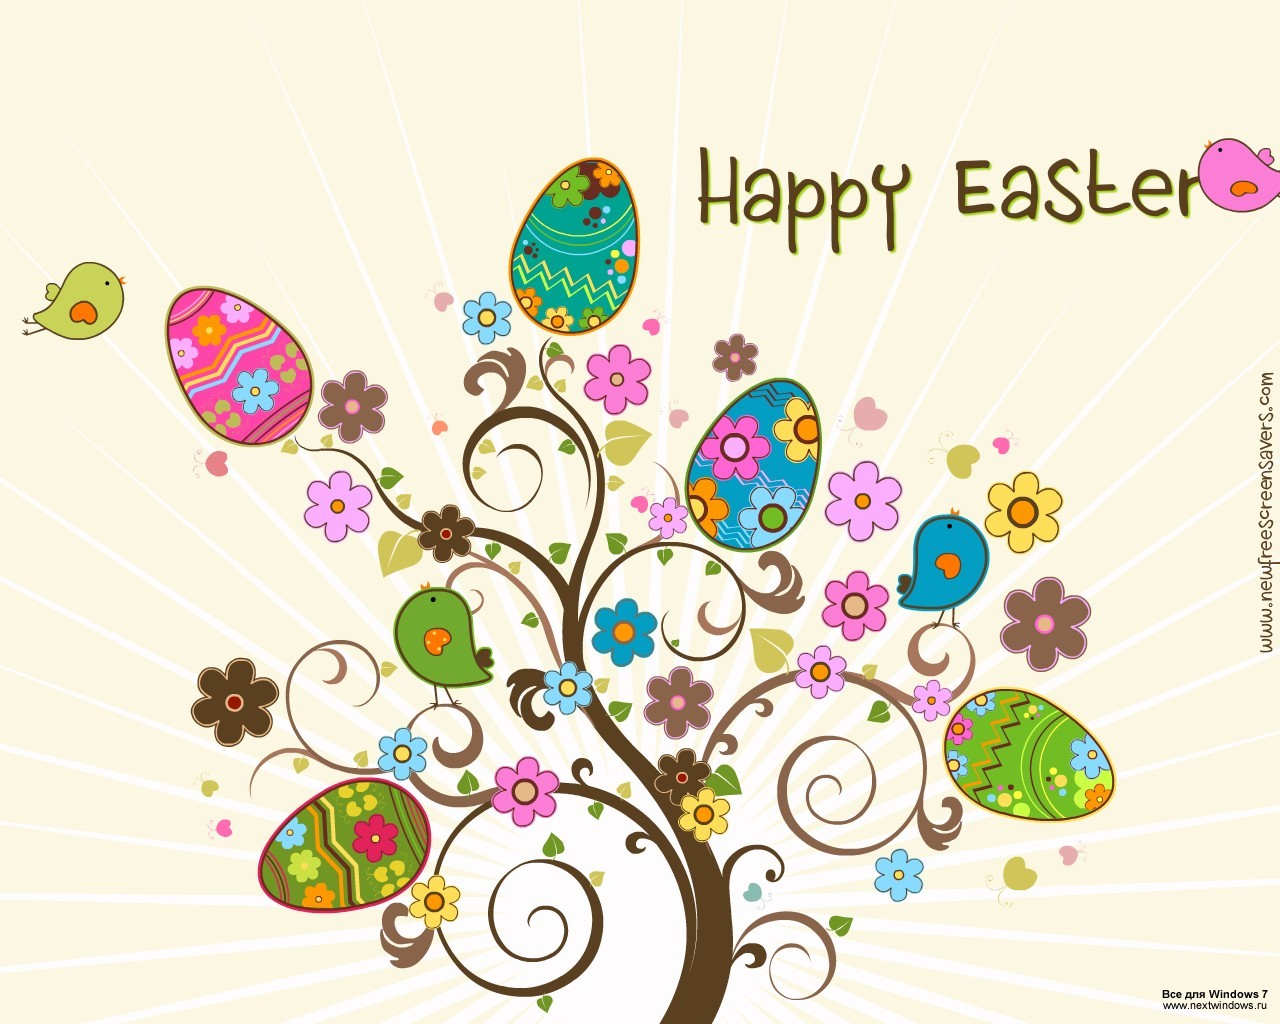 Holiday clipart happy easter pencil and inlor holiday jpg.